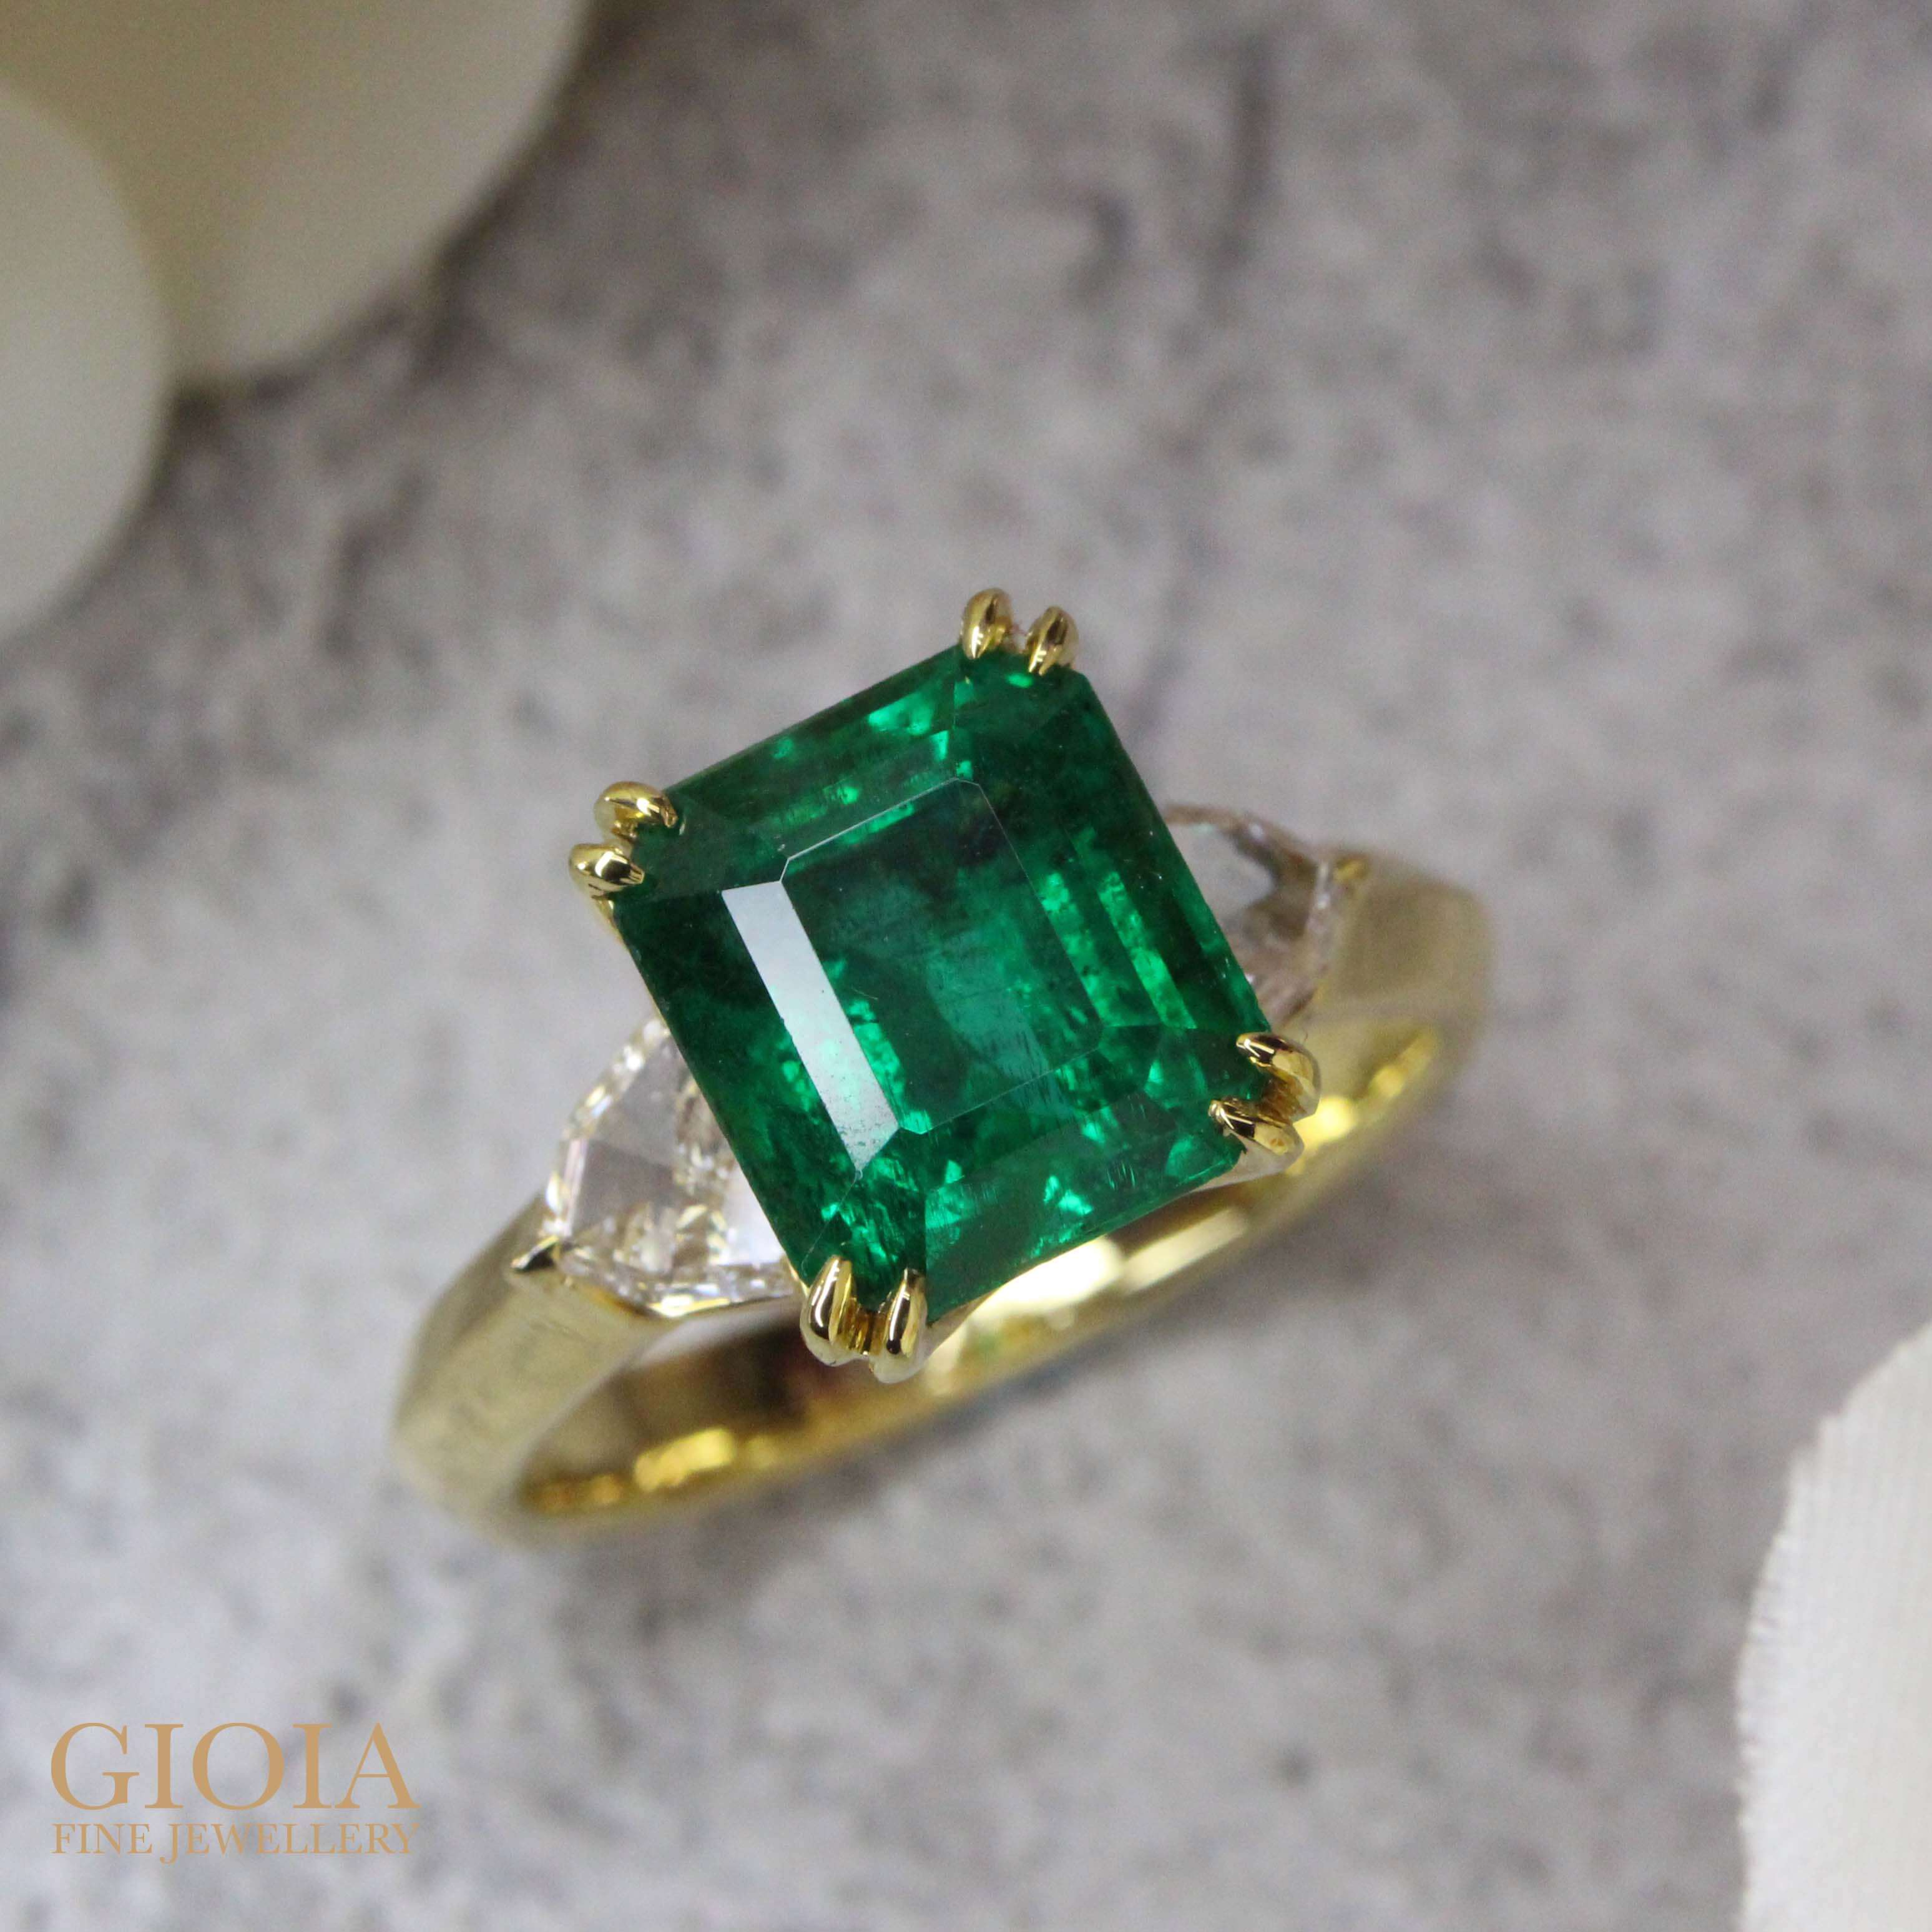 Emerald Proposal Engagement Ring, custom made with minor oil emerald gemstone, customised engagement ring for wedding proposal | Local bespoke Singapore private jeweller